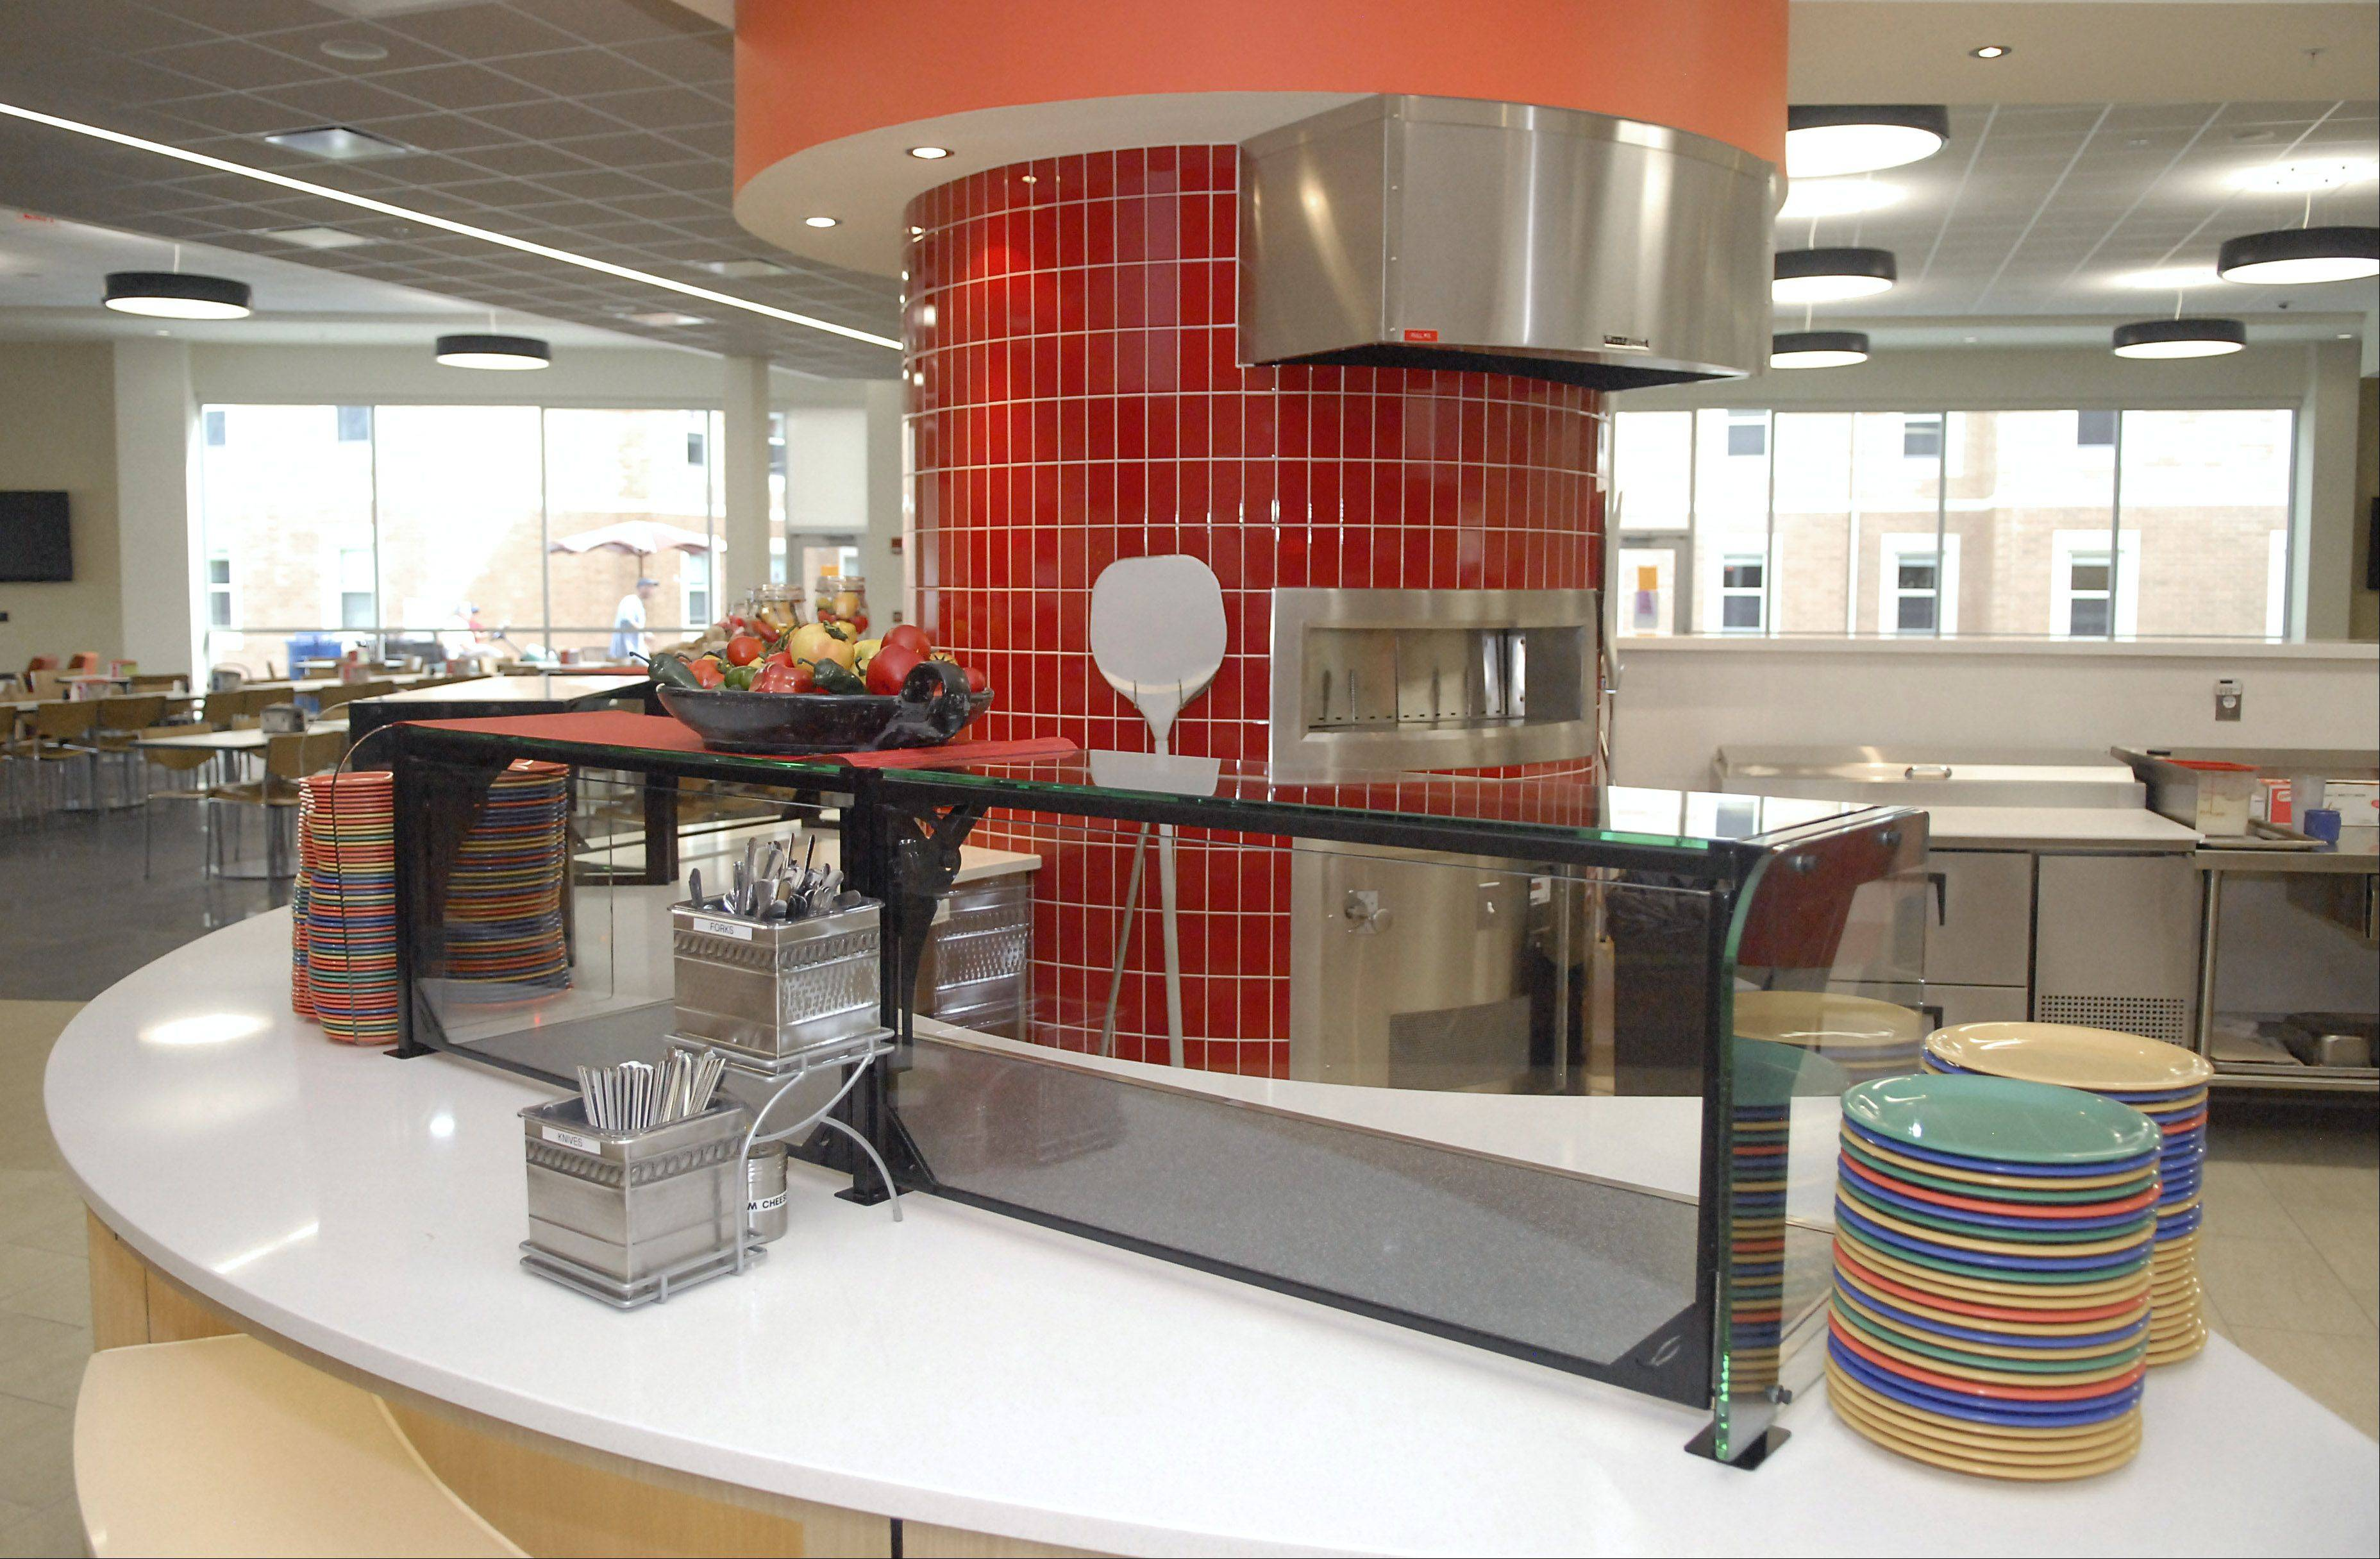 The red-bricked area contains a pizza oven in the cafeteria of the New Residence Hall Community Center at Northern Illinois University in DeKalb on Thursday, August 23.